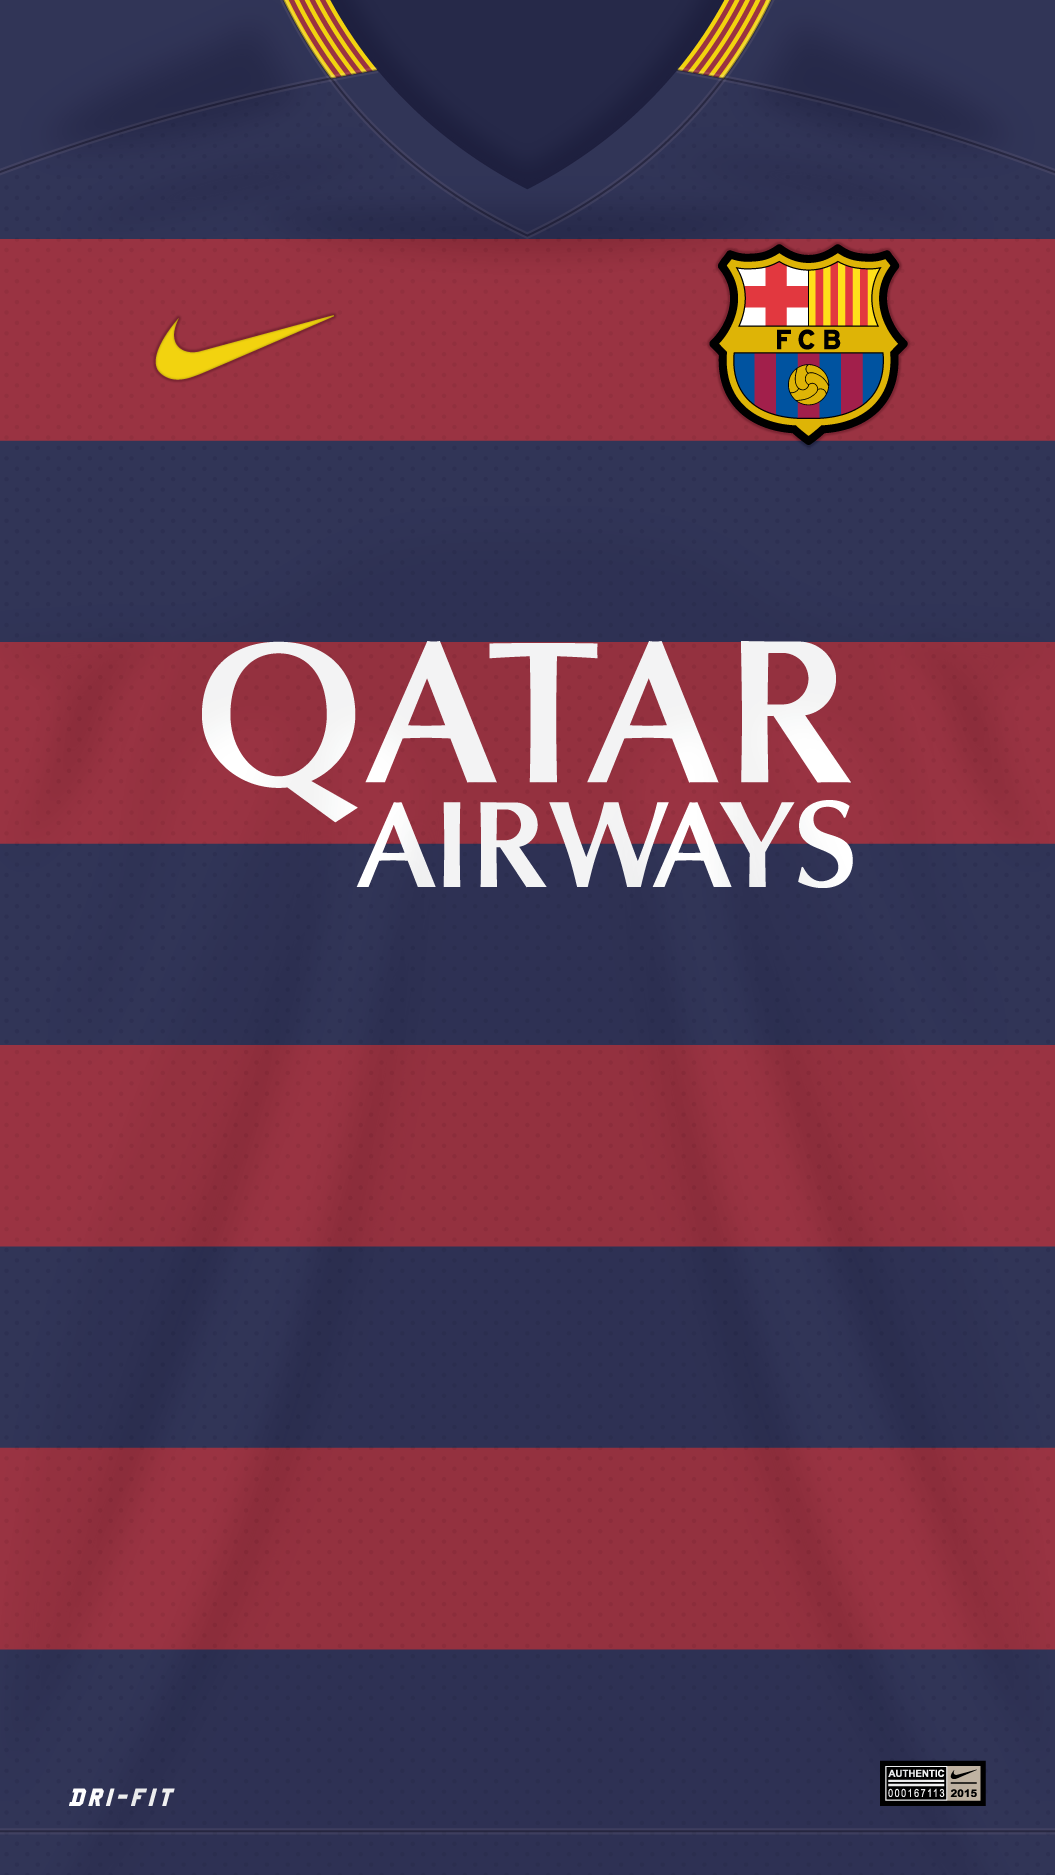 Image for Fc Barcelona Iphone Wallpaper For Android meoat